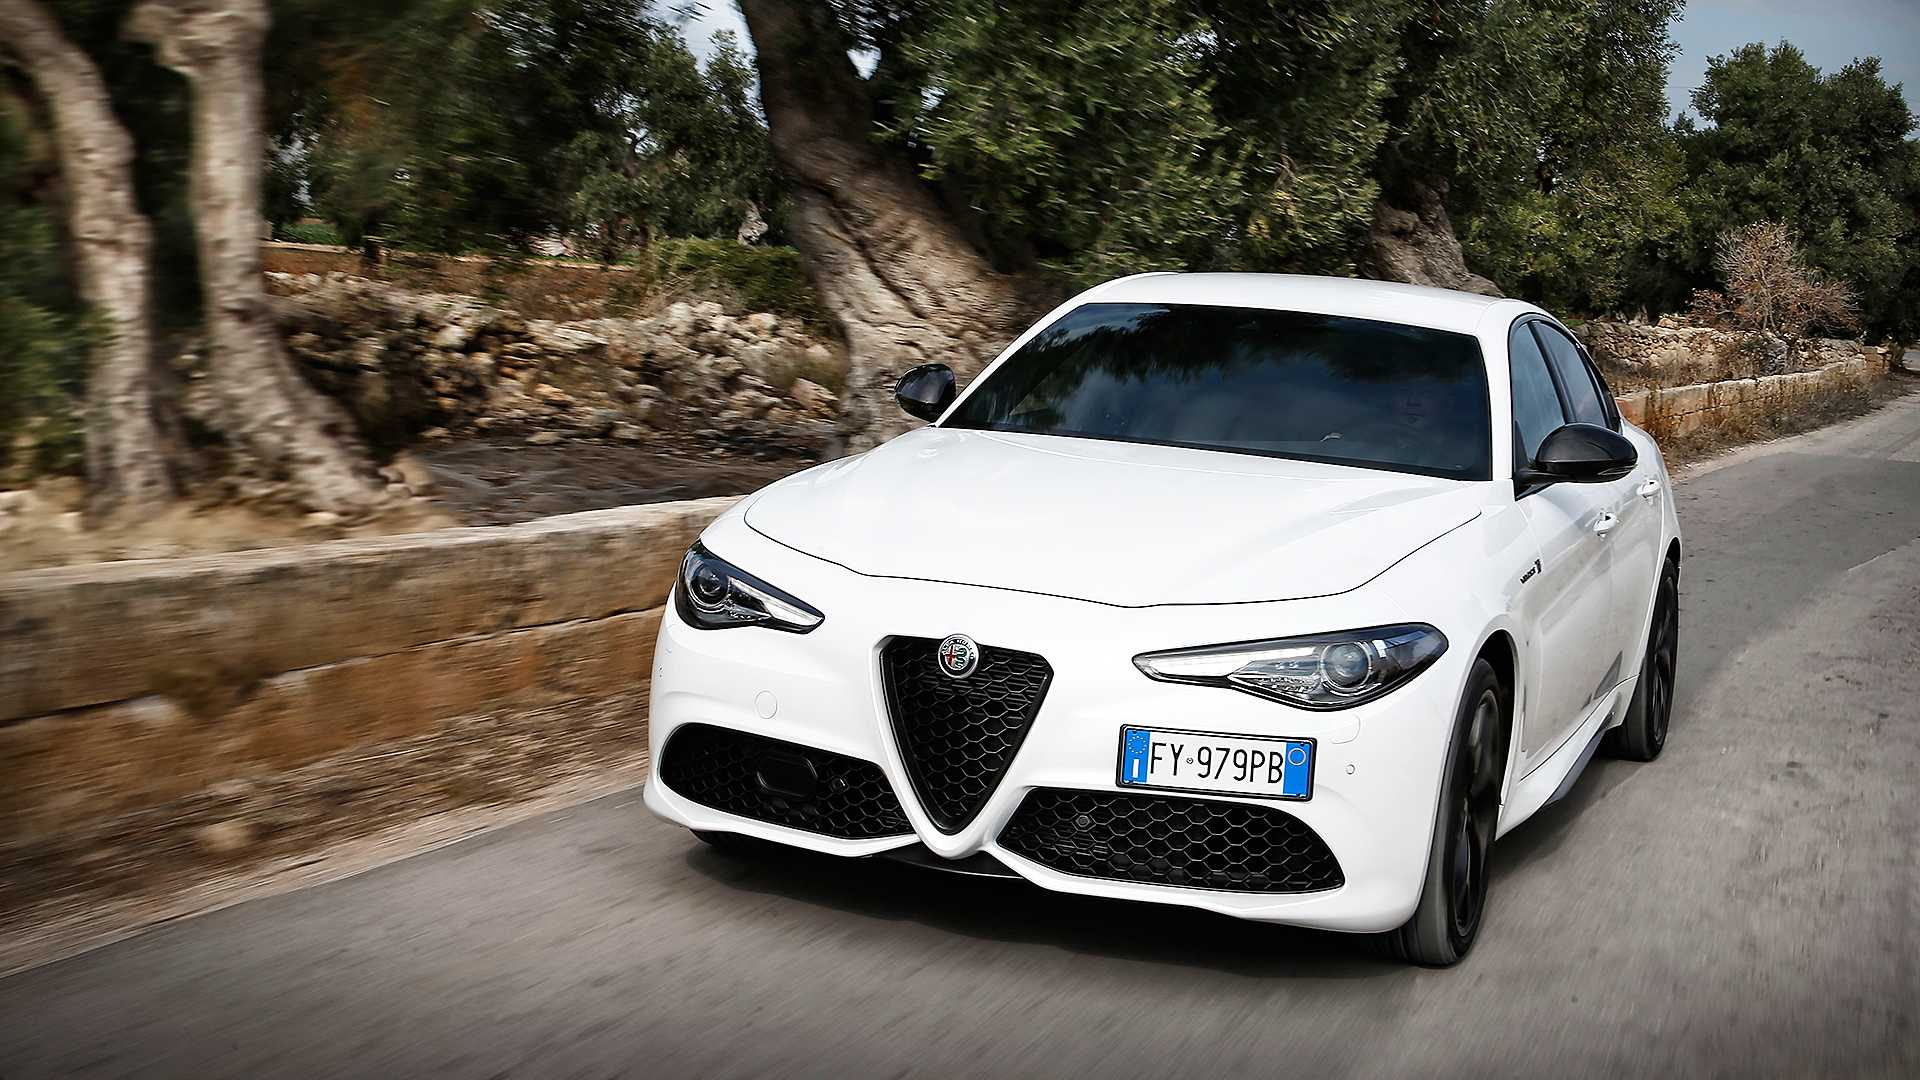 alfa-romeo-giulia-stelvio-updated-for-2020-model-year_7